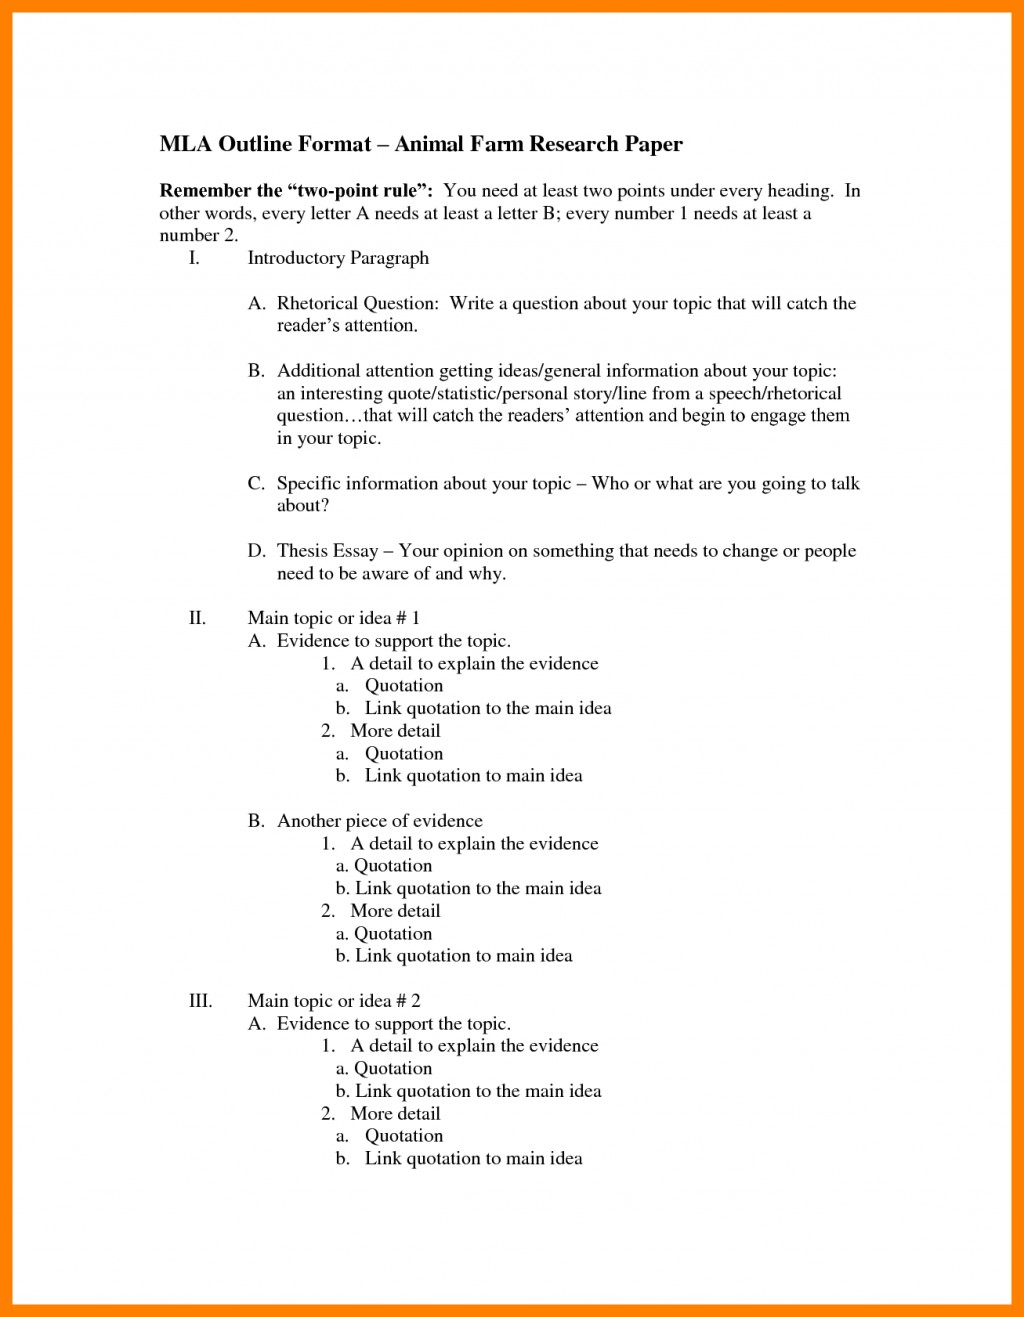 001 Outline Templatech Paper Mla Bunch Ideas Of Example Brilliant Impressive Template Research Blank Format Large